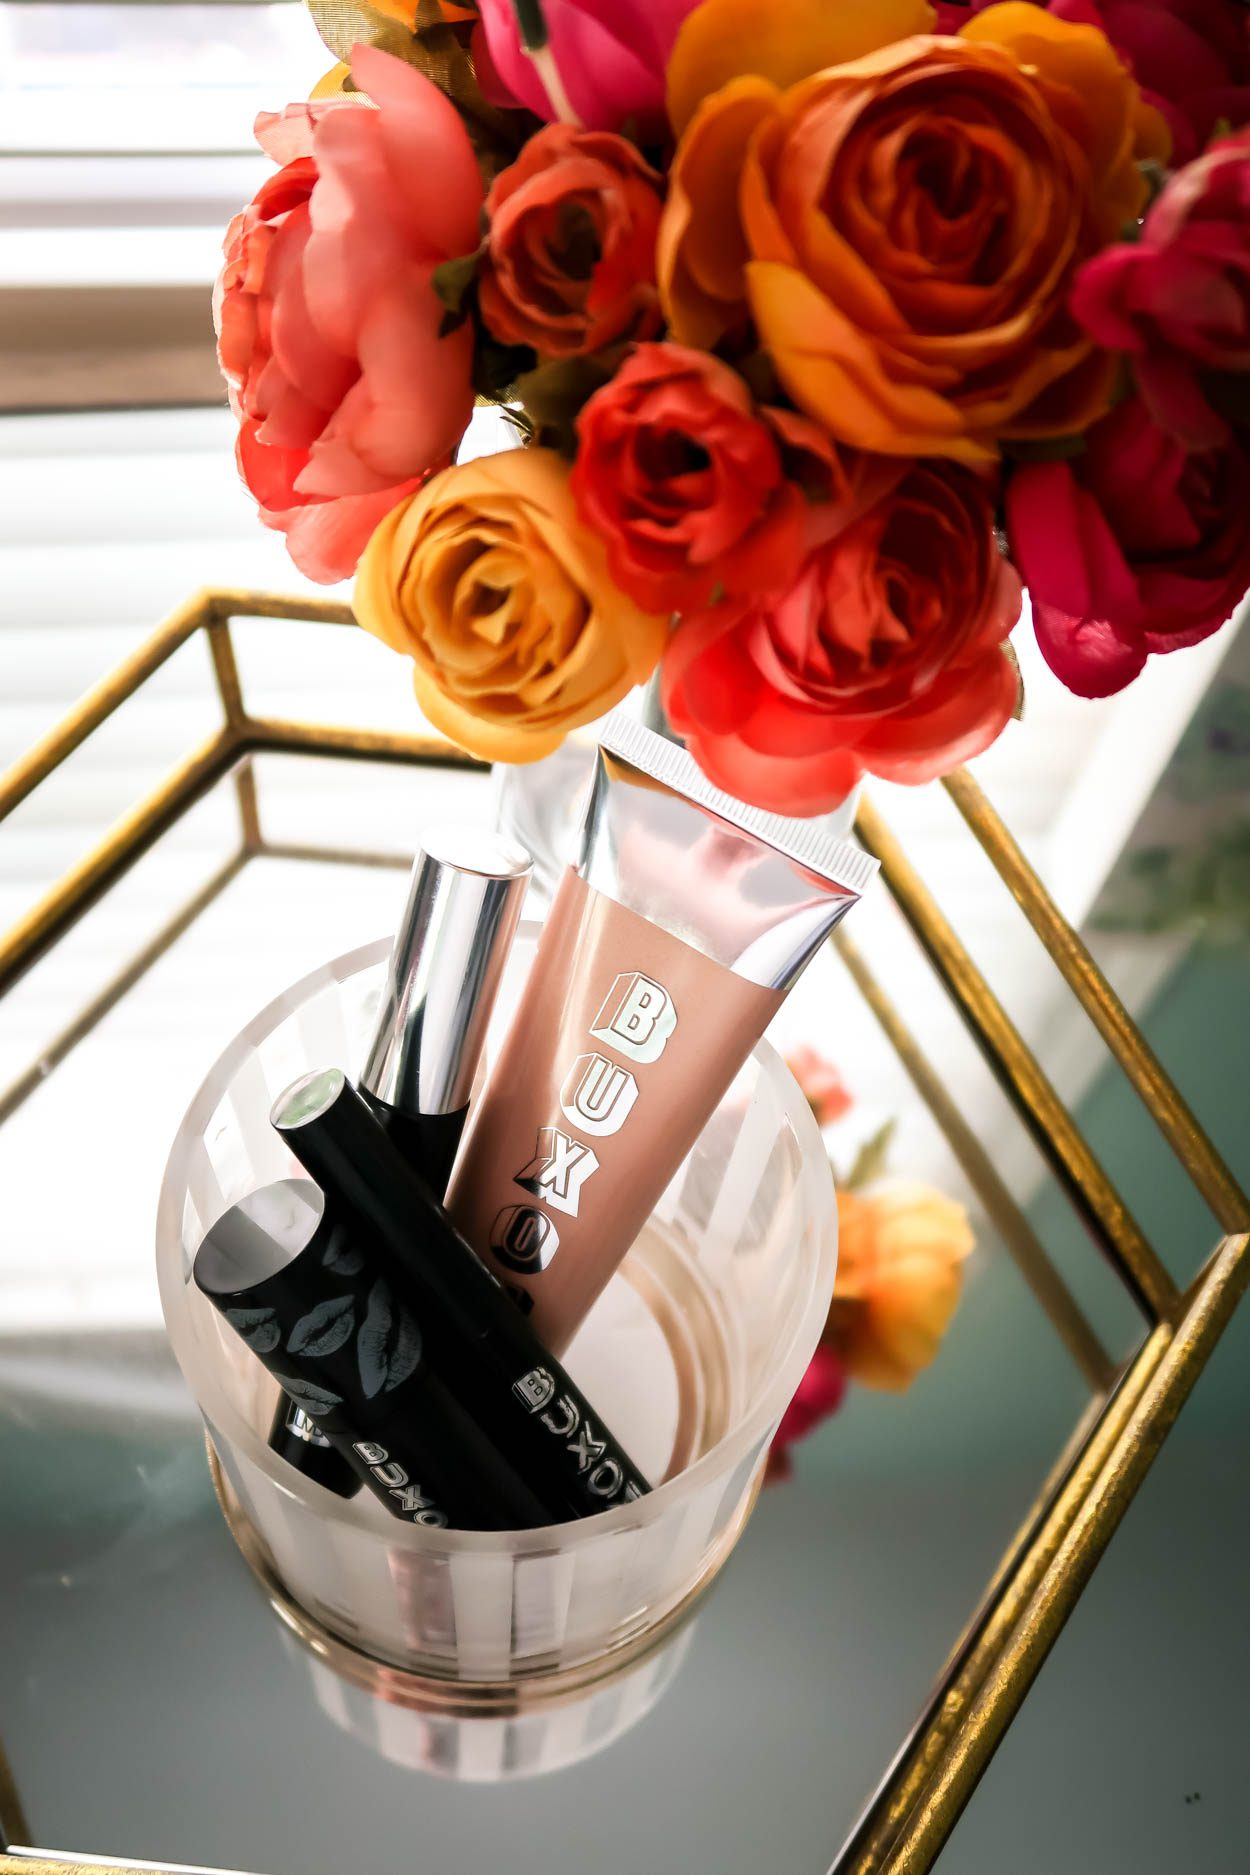 Favorite Makeup Products From Buxom Cosmetics that will help you achieve a gorgeous, but yet natural makeup look in no time! #beauty #makeup #buxomcosmetics #fallmakeup